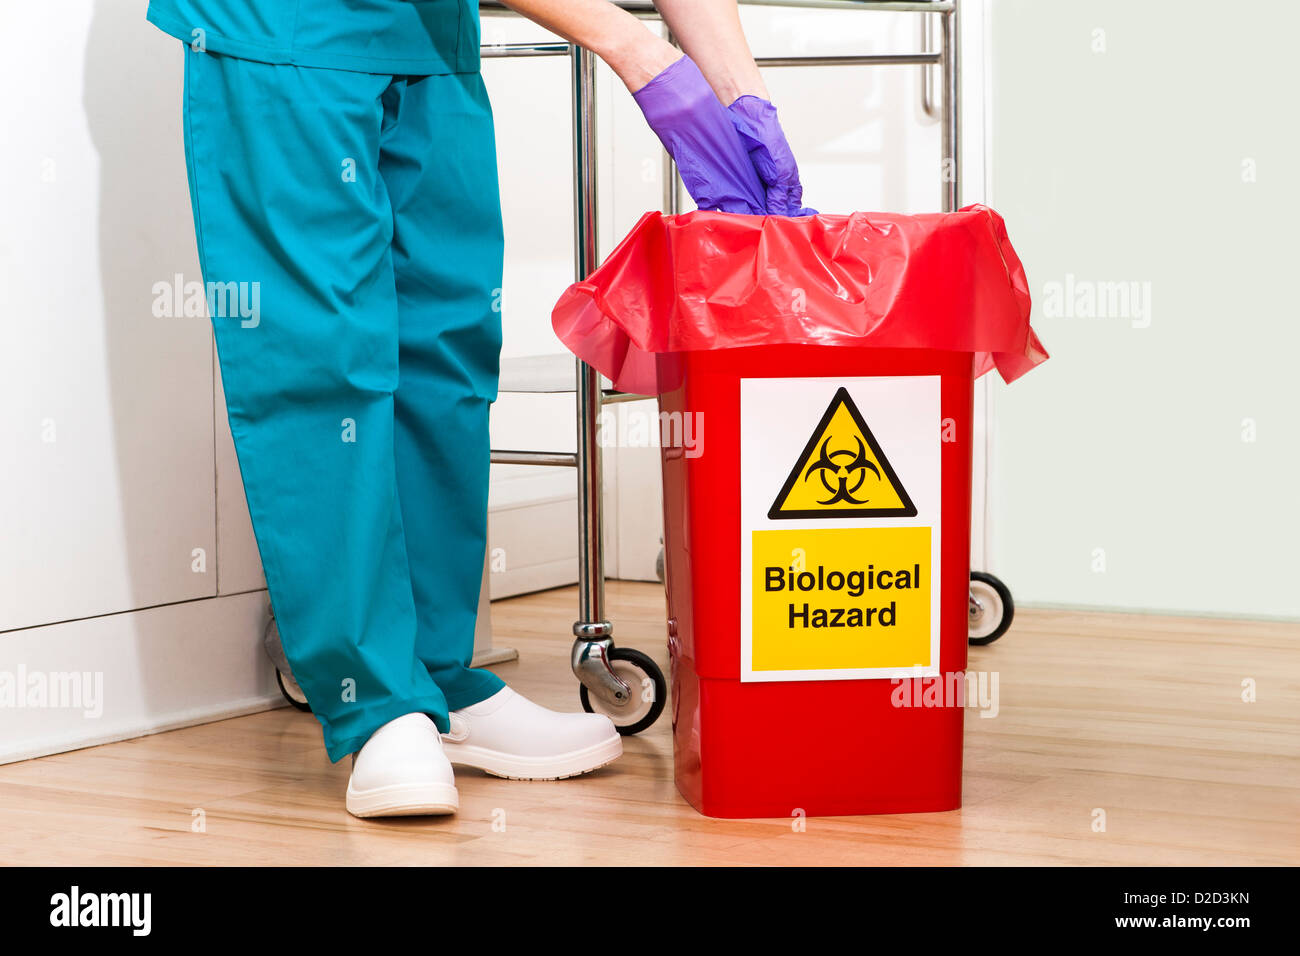 MODEL RELEASED Clinical waste disposal - Stock Image